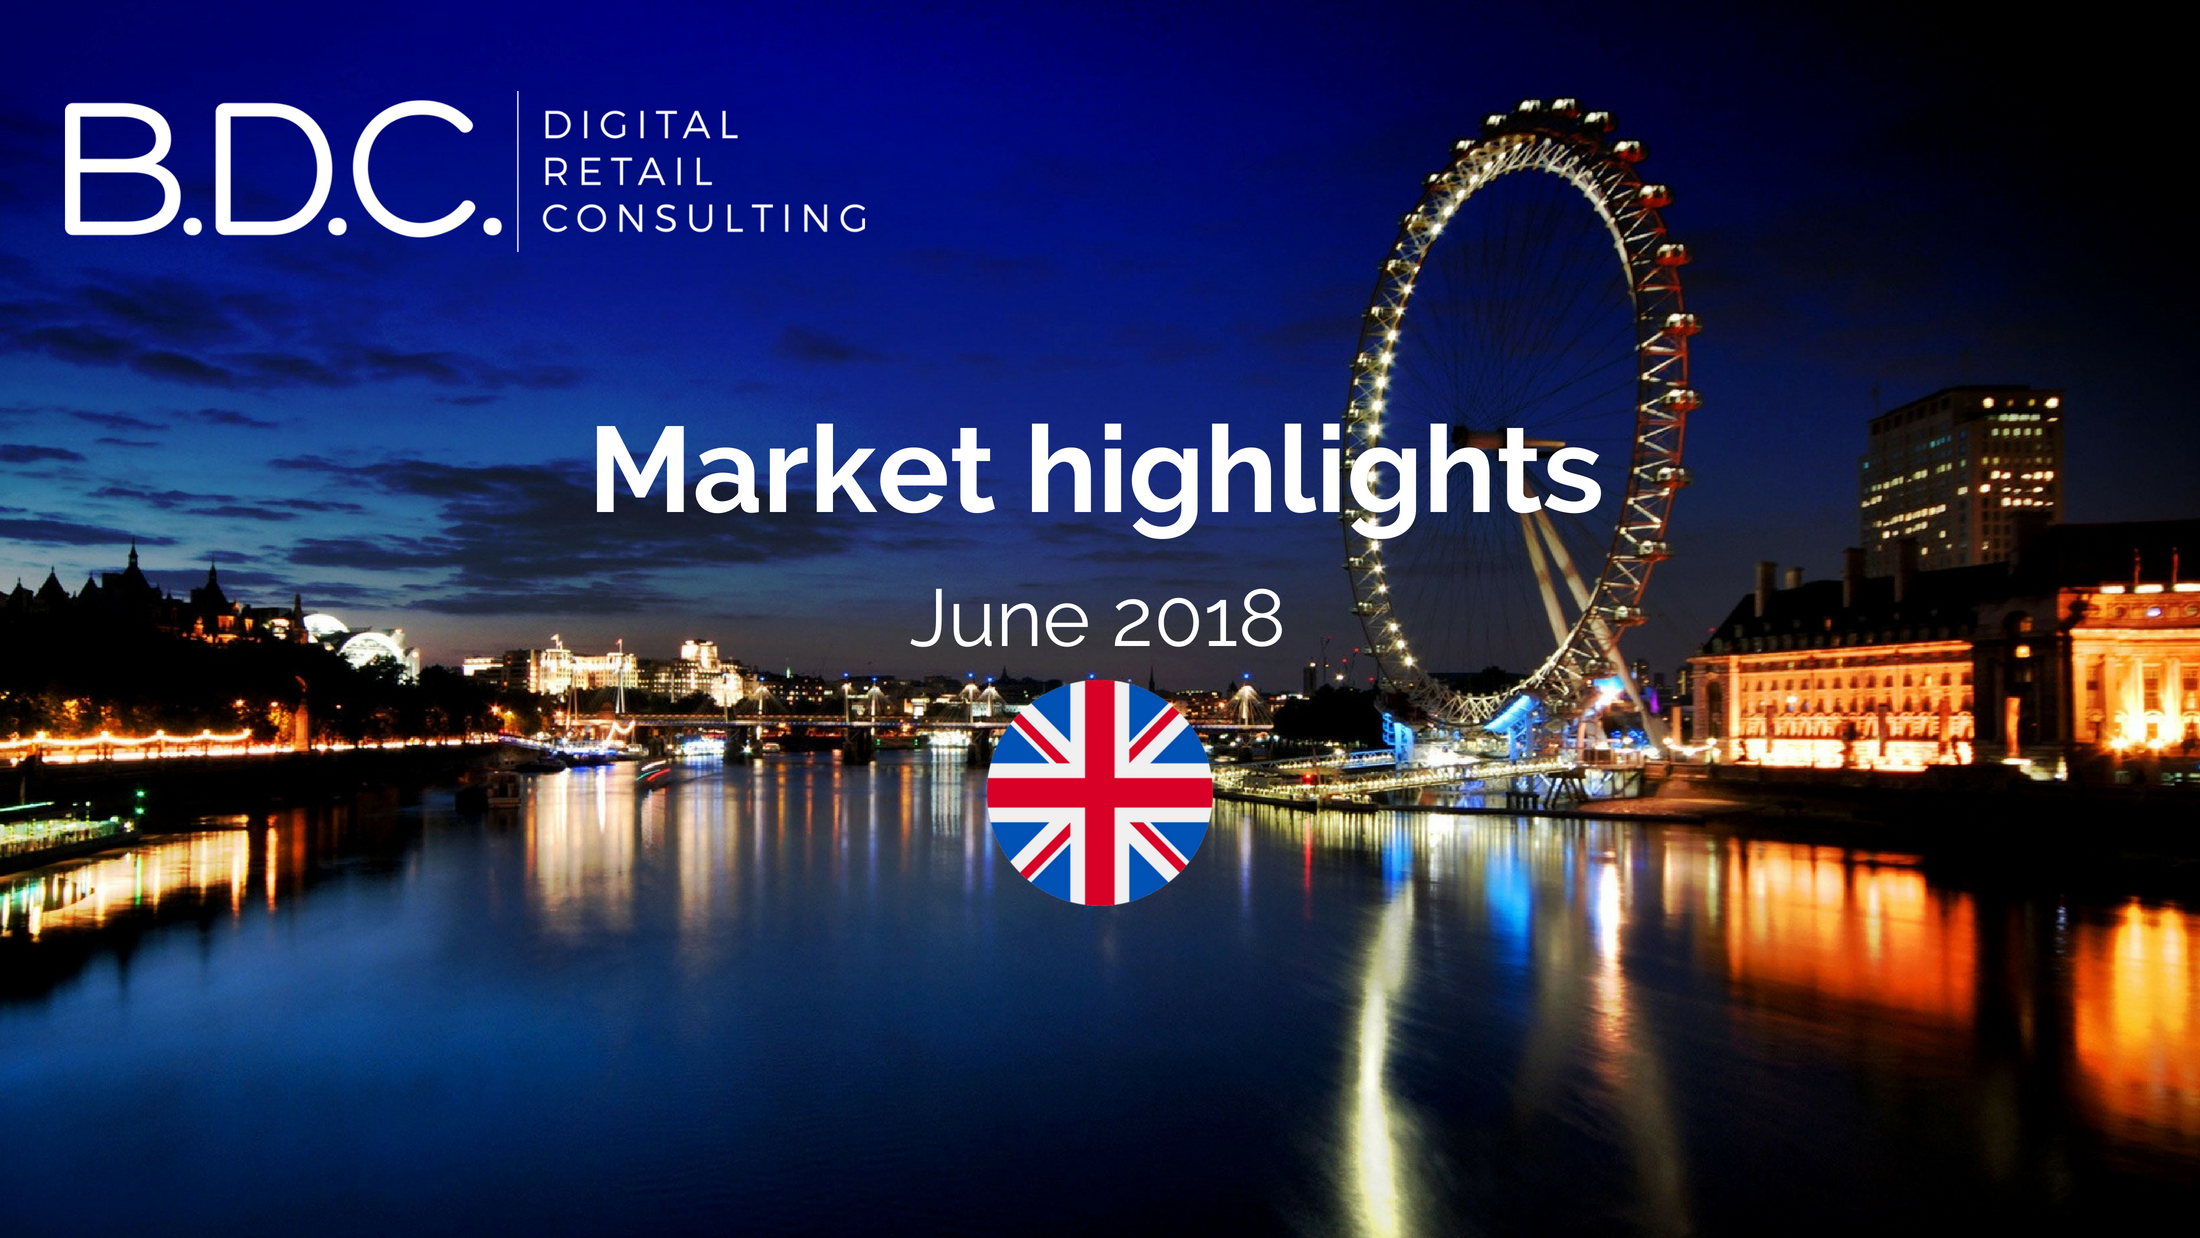 Trends News 40 - UK MARKET HIGHLIGHTS – JUNE 2018